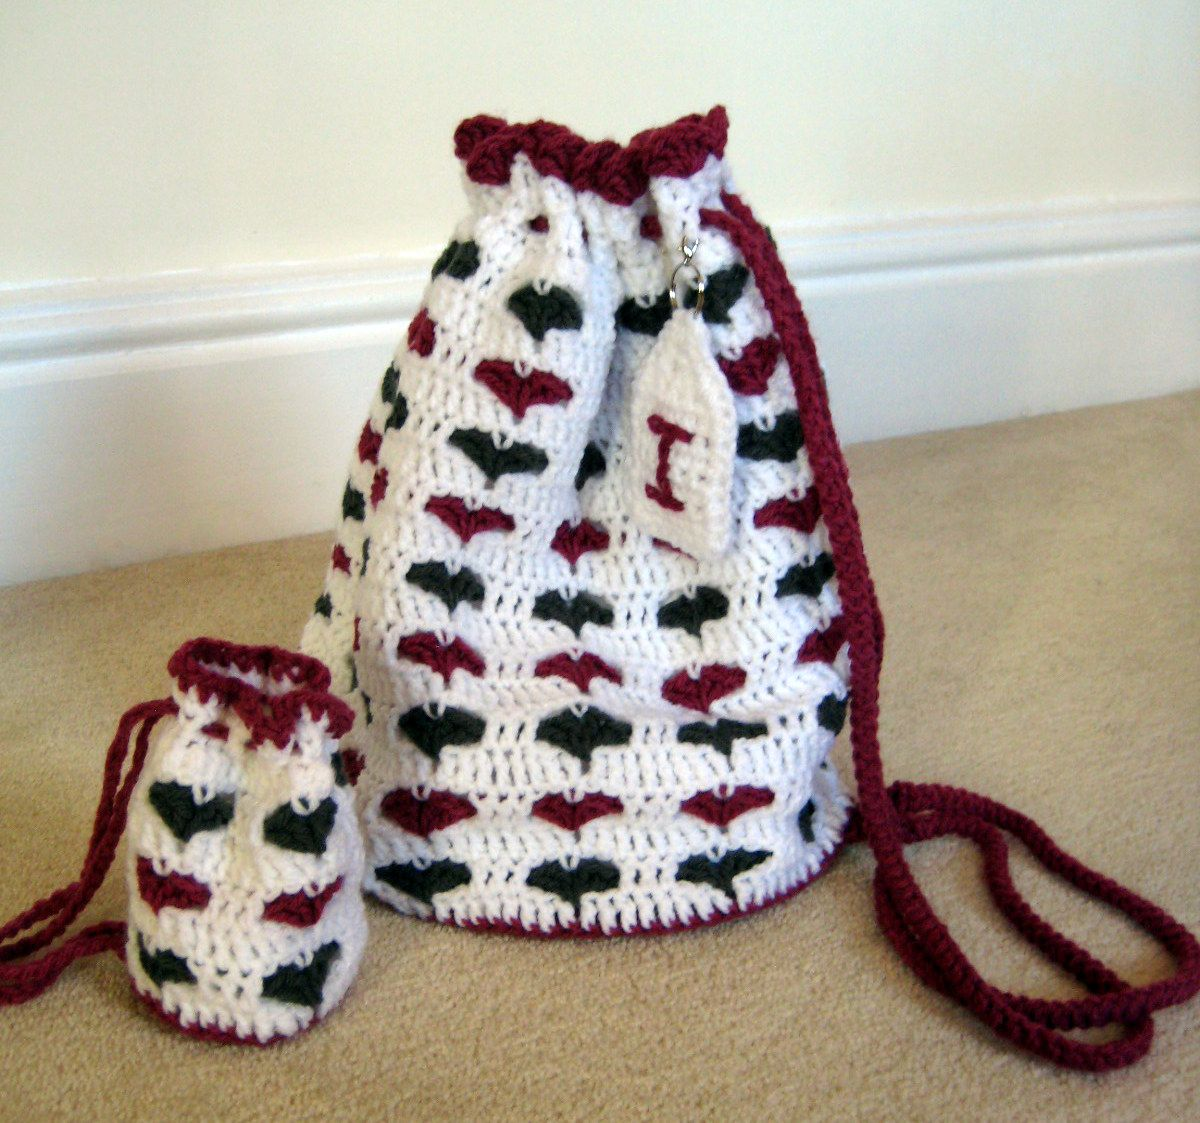 Free Crochet Patterns Drawstring Bags : Pin by Patternsforcrochet (a free pattern website) on ...